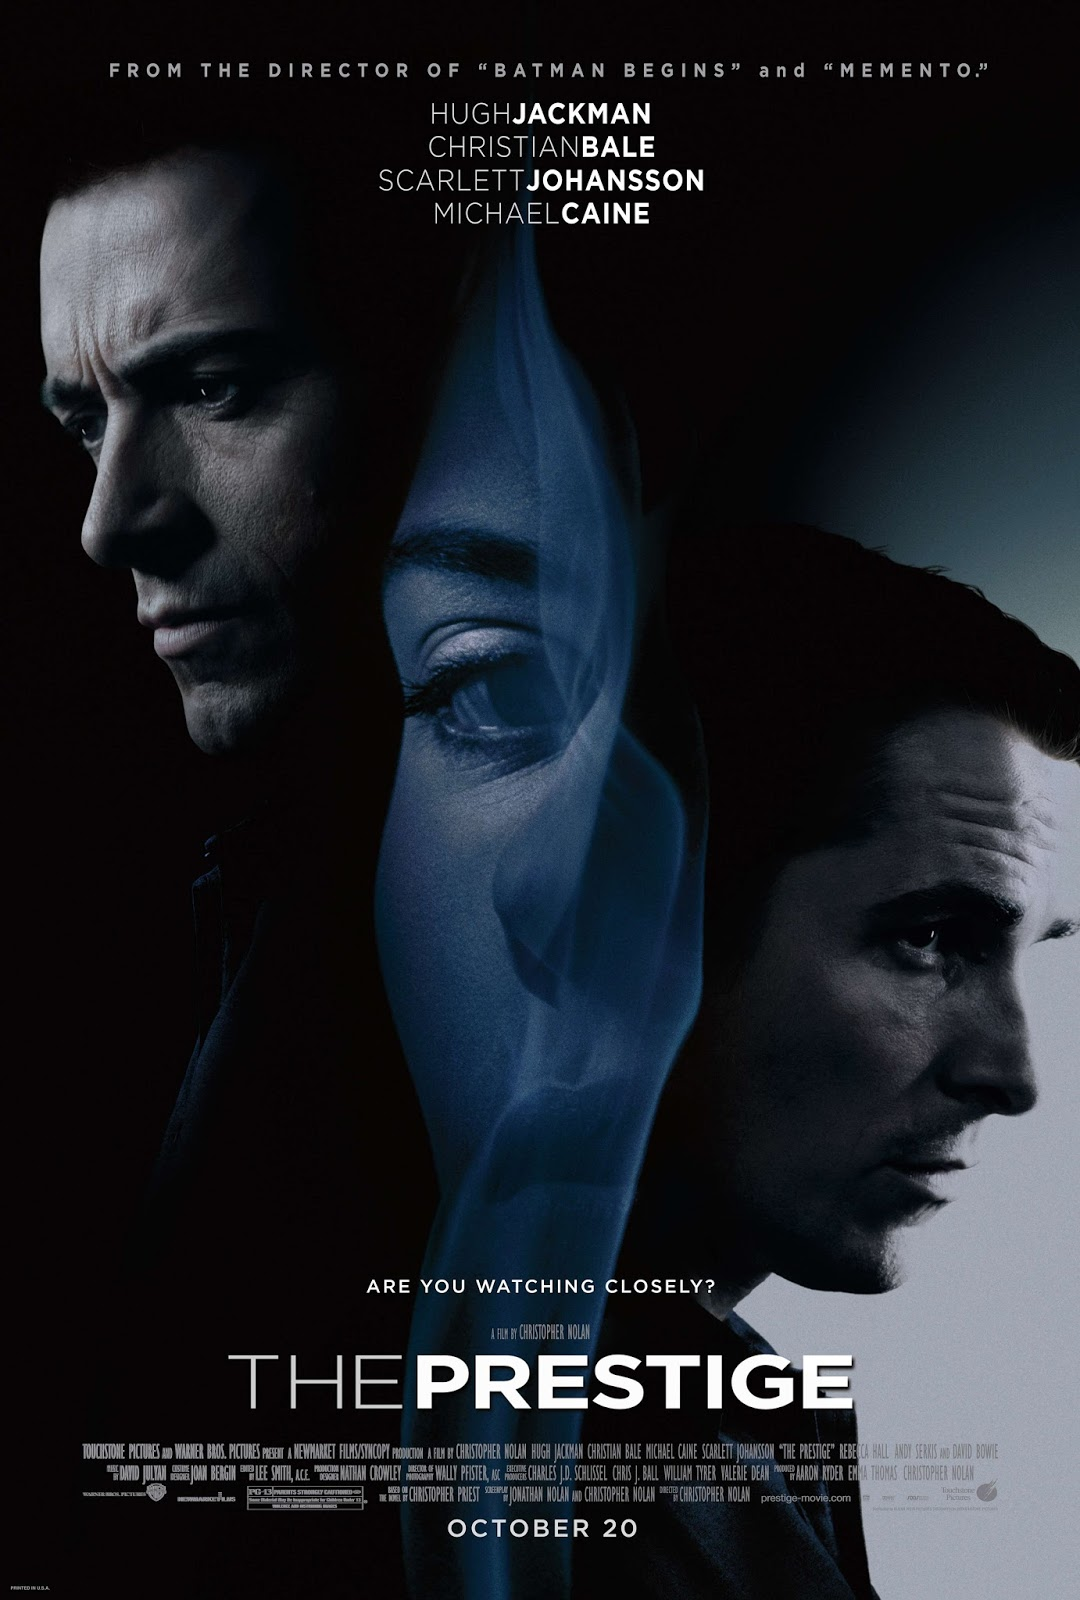 The theatrical release poster for The Prestige. It depicts the faces of three of the stars. From left to right: Hugh Jackman, Scarlett Johansson and Christian Bale are shown. Jackman and Bale are both shown in black and white, while Johansson is partially obscured by a blueish-gray, translucent smoke.